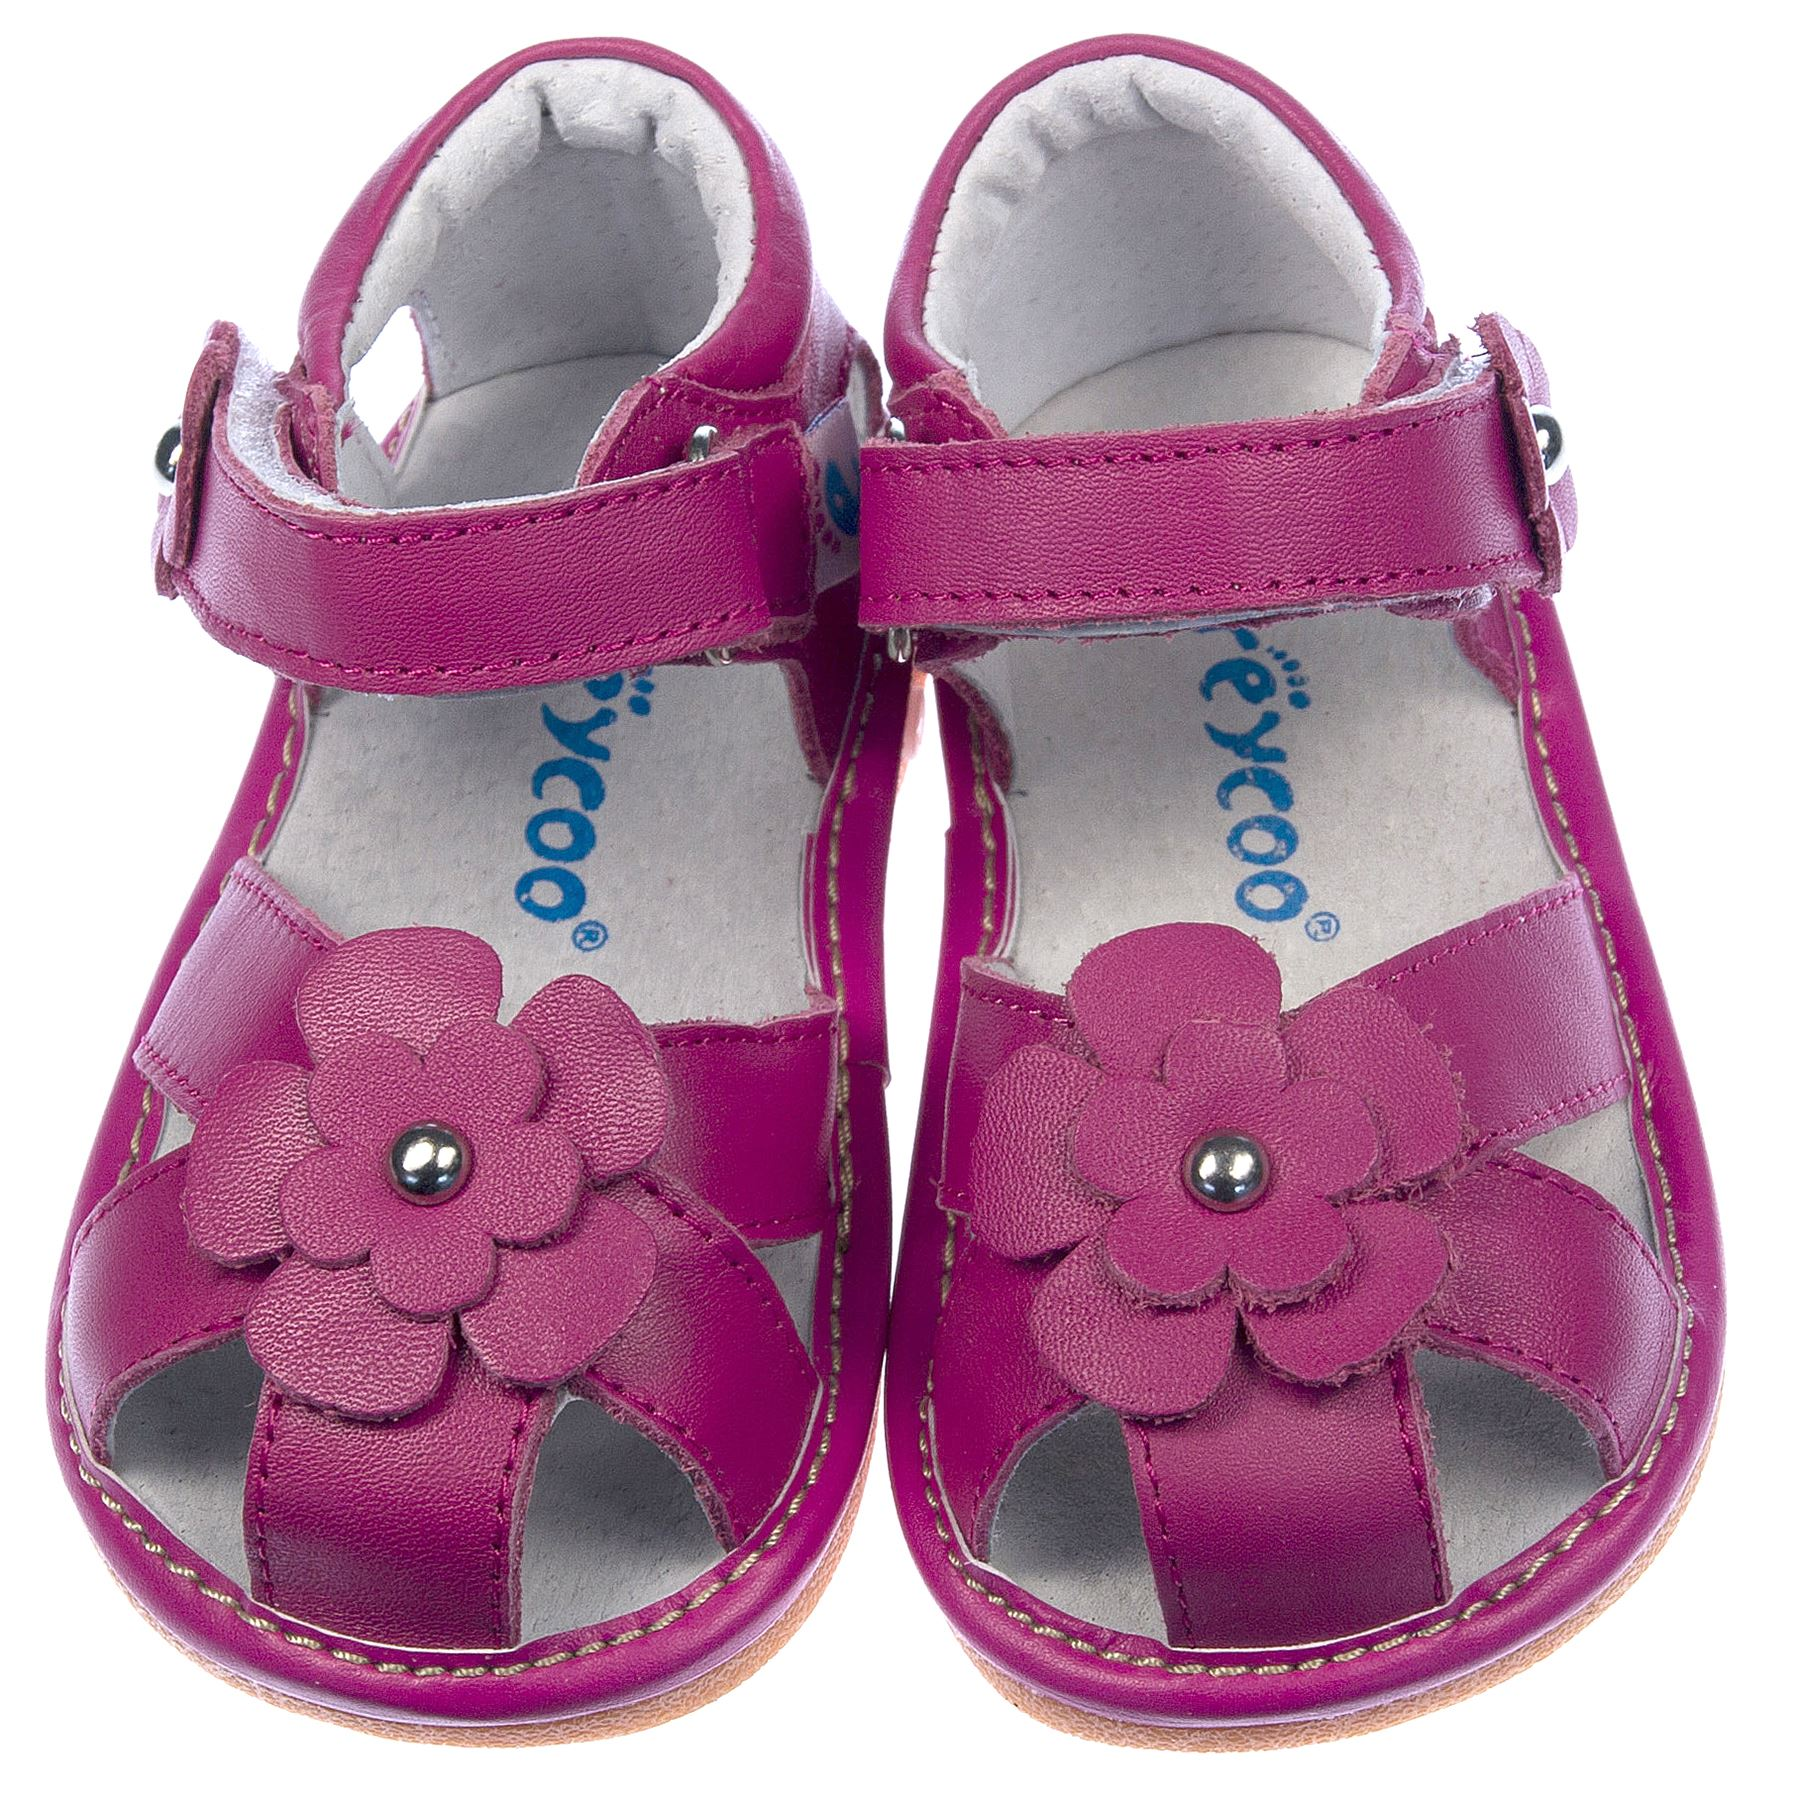 sandales chaussures fille b b enfant cuir v ritable cir rose vif pieds larges ebay. Black Bedroom Furniture Sets. Home Design Ideas